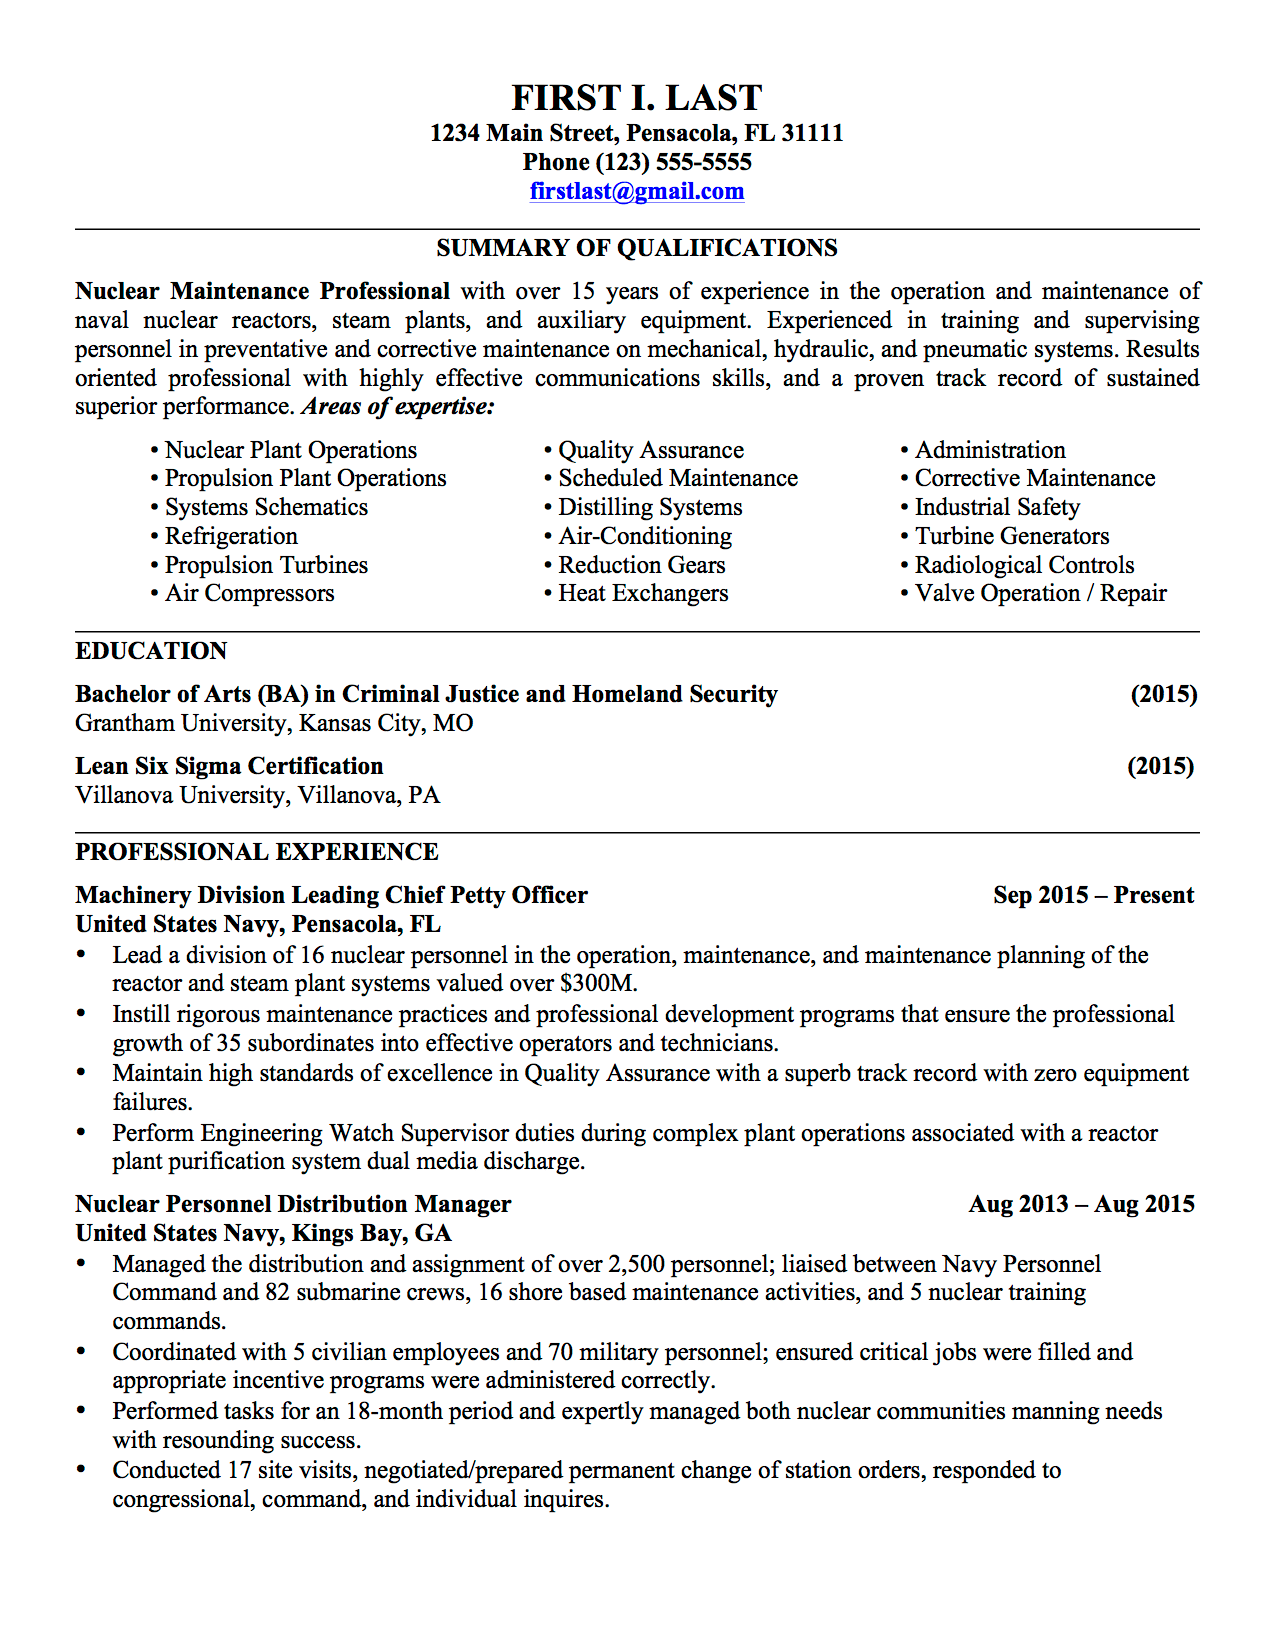 Military Resume Samples Military Resume Military Veteran Resume Examples  Example Veteran Resume Military Military Resume Sample